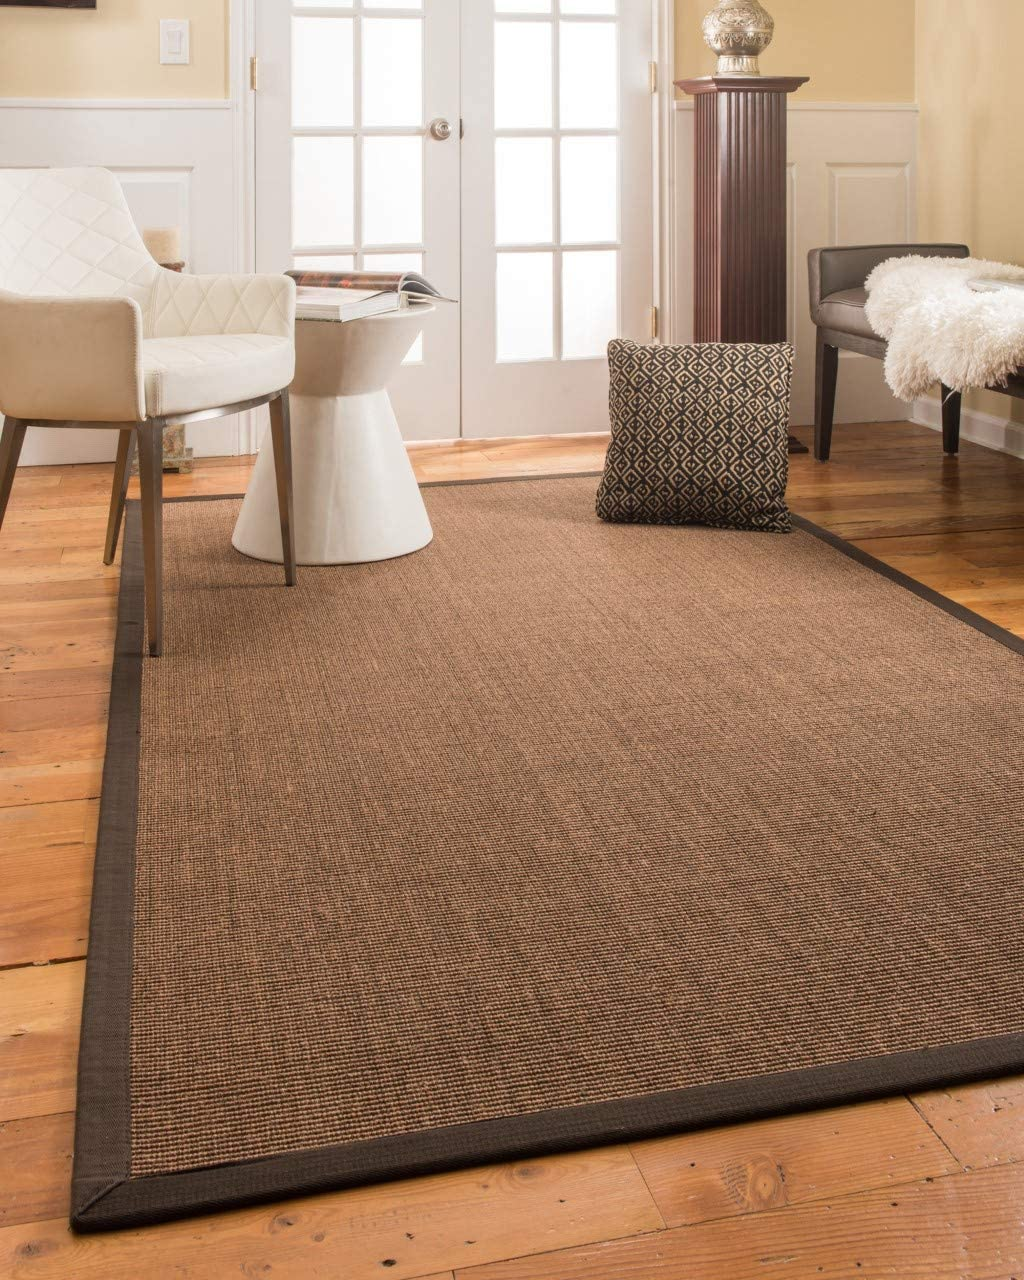 Natural Area Rugs Lucia, Dark Brown Sisal Rug, 8 x 10